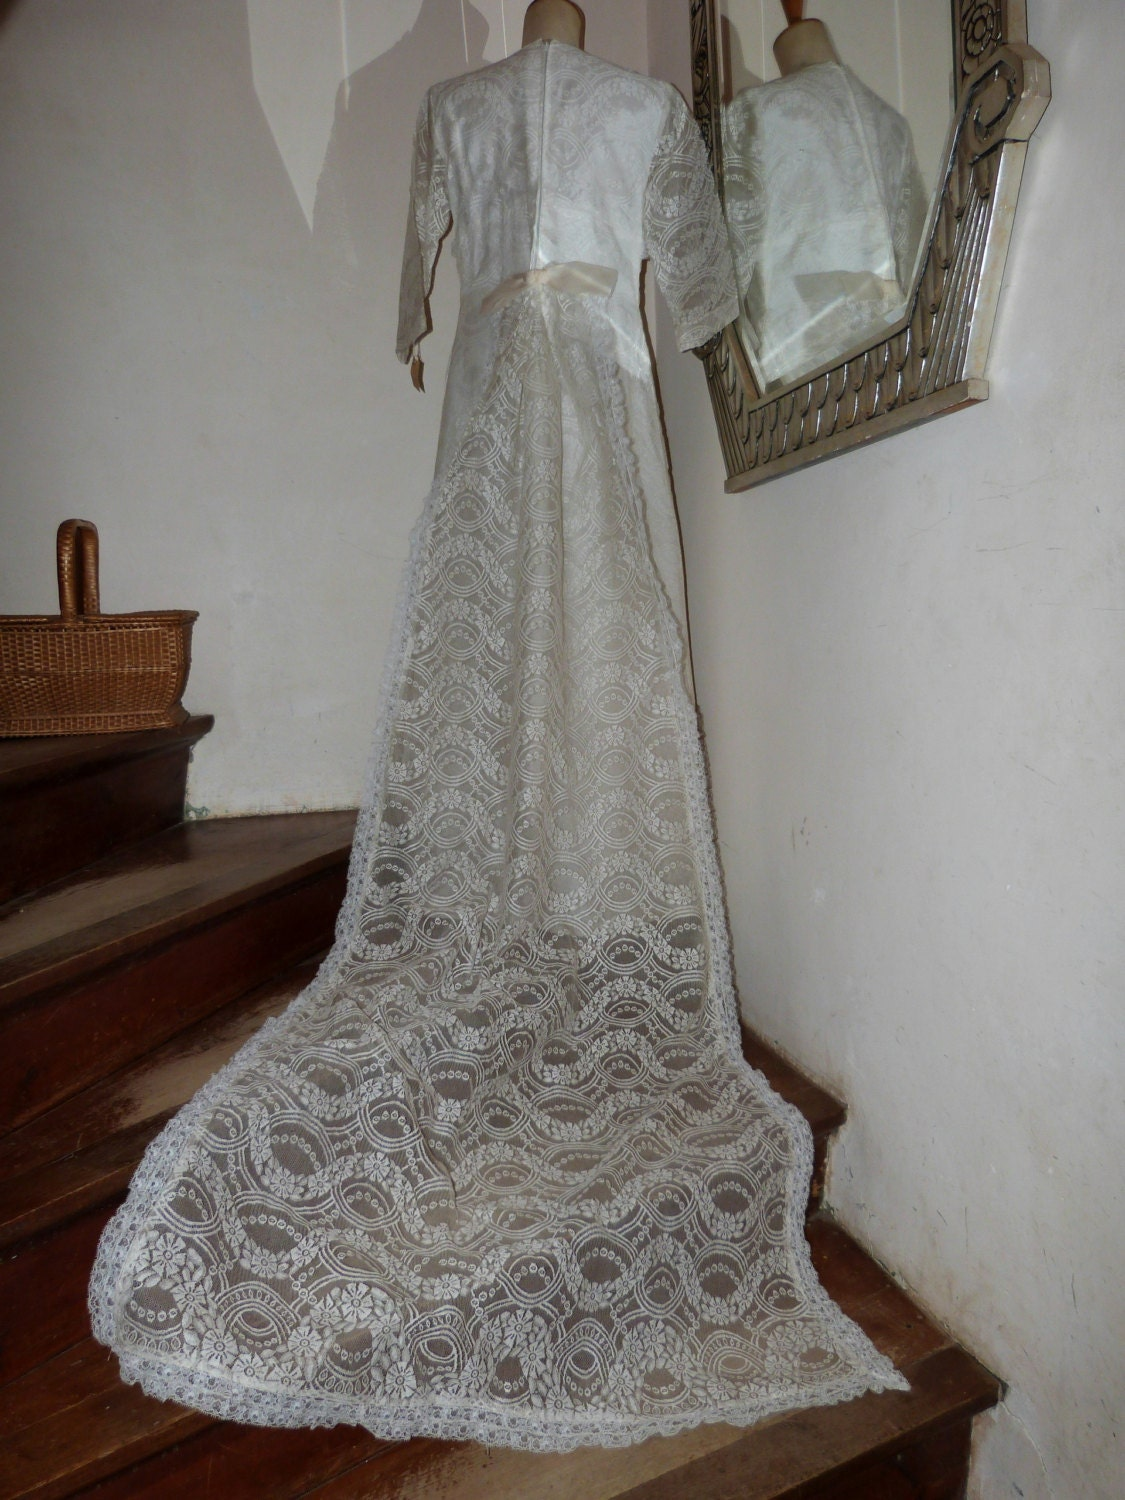 Vintage white lace wedding dress w long train veil new unused